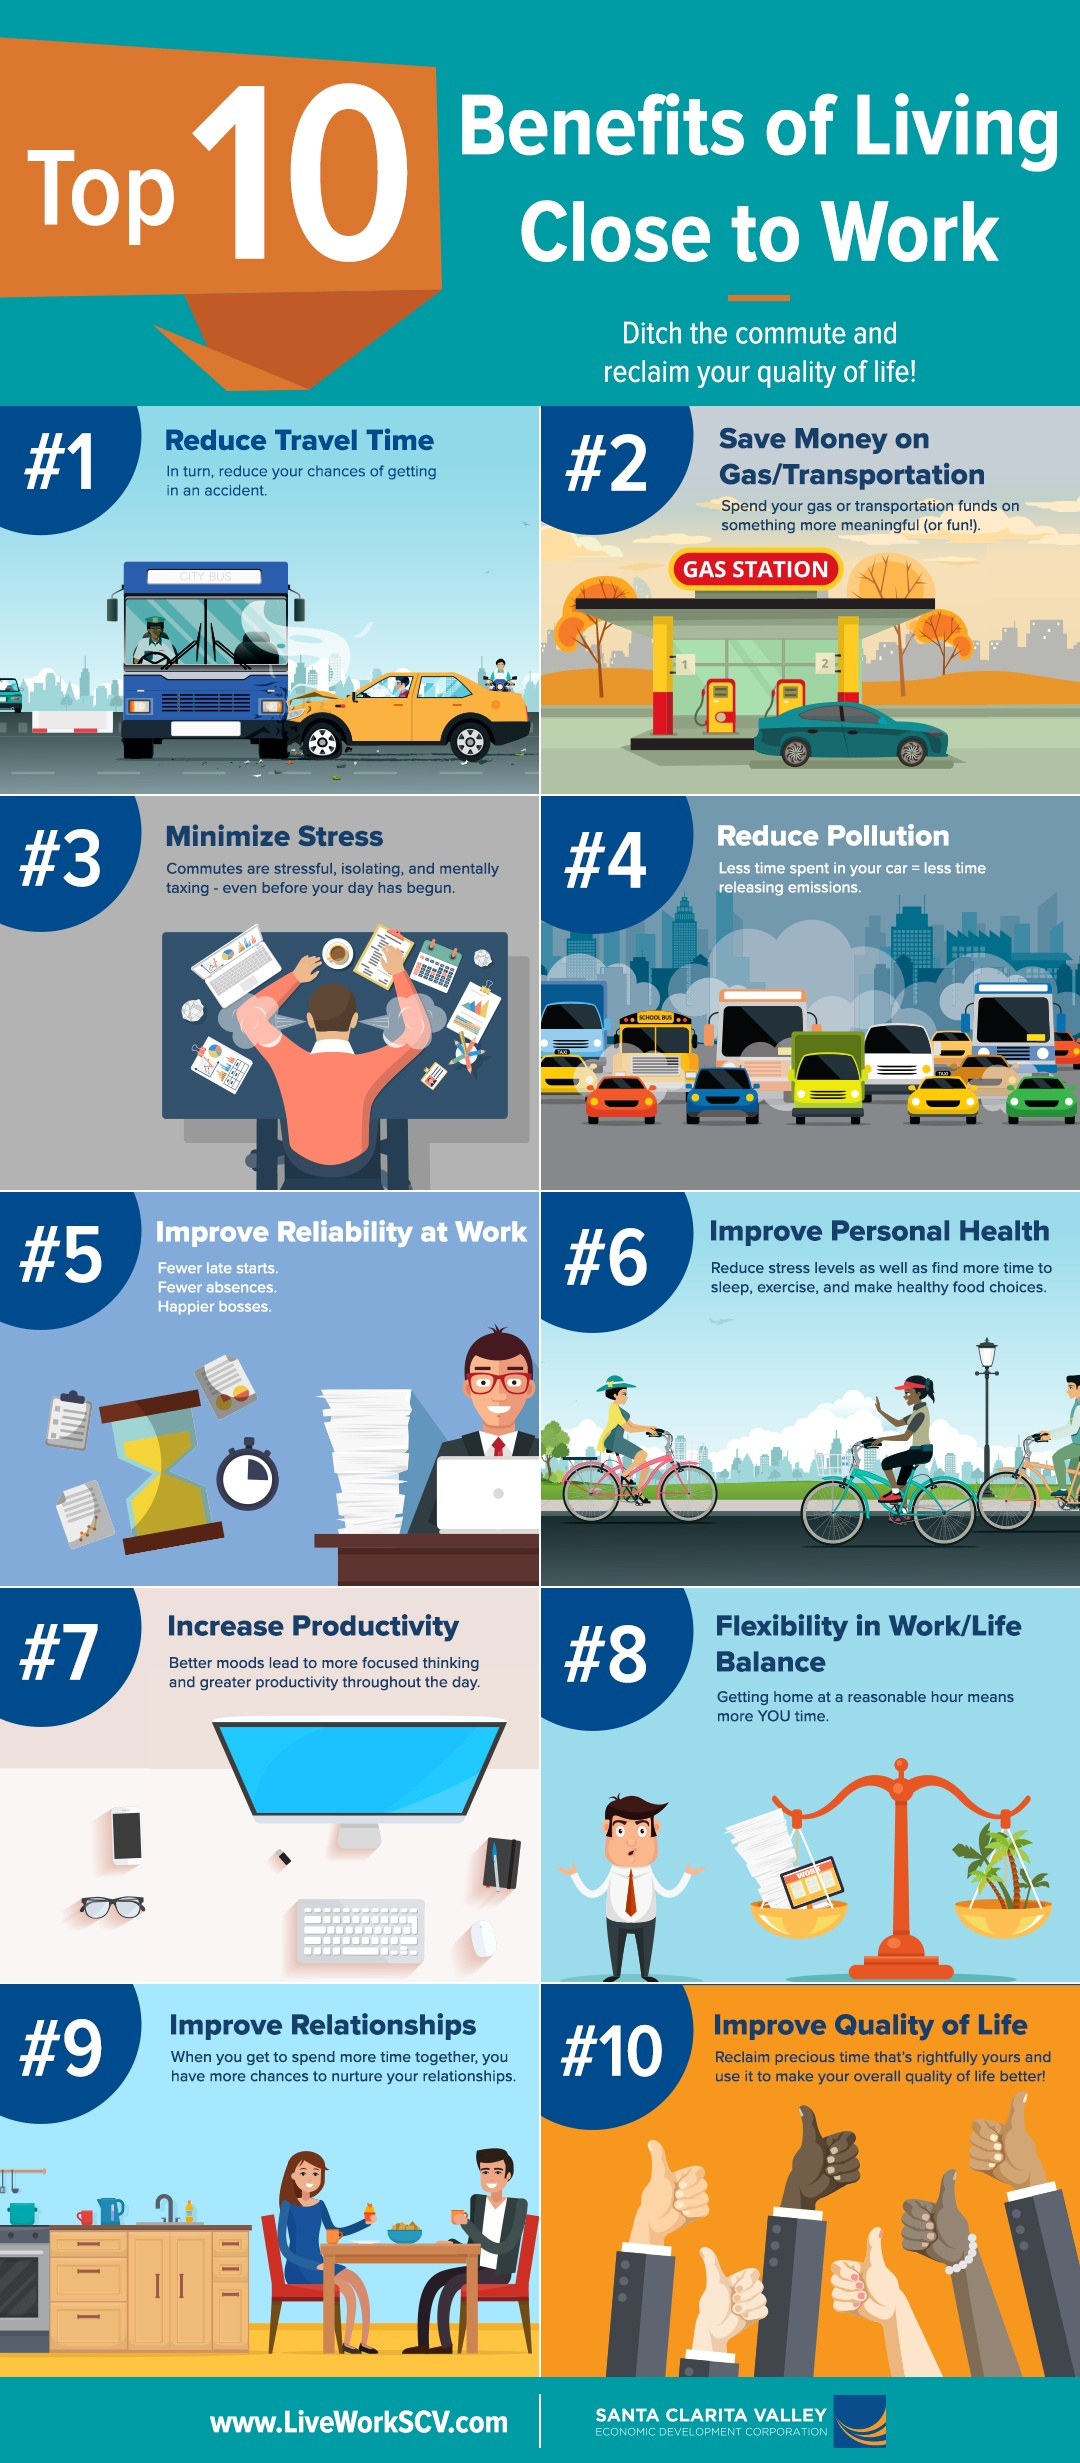 SCVEDC - Top 10 Benefits of Living Close to Work (Full).jpg